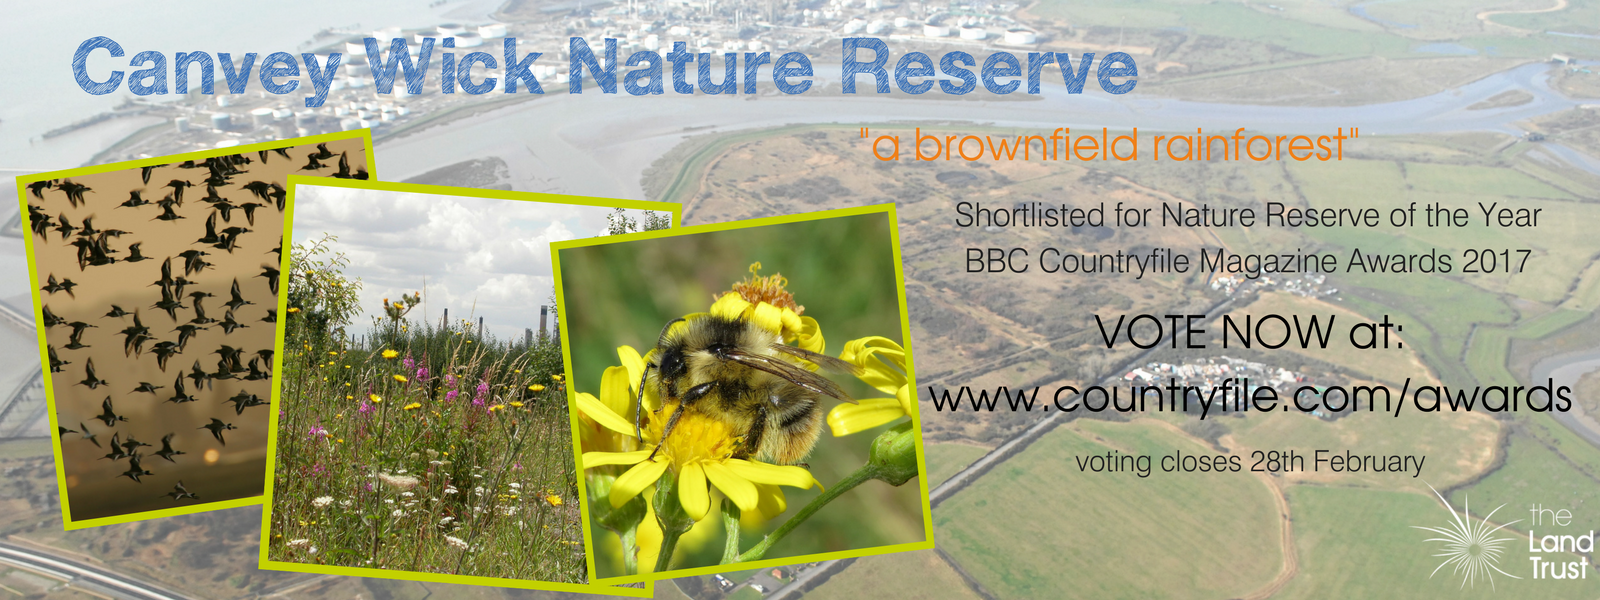 Canvey Wick BBC Countryfile nomination